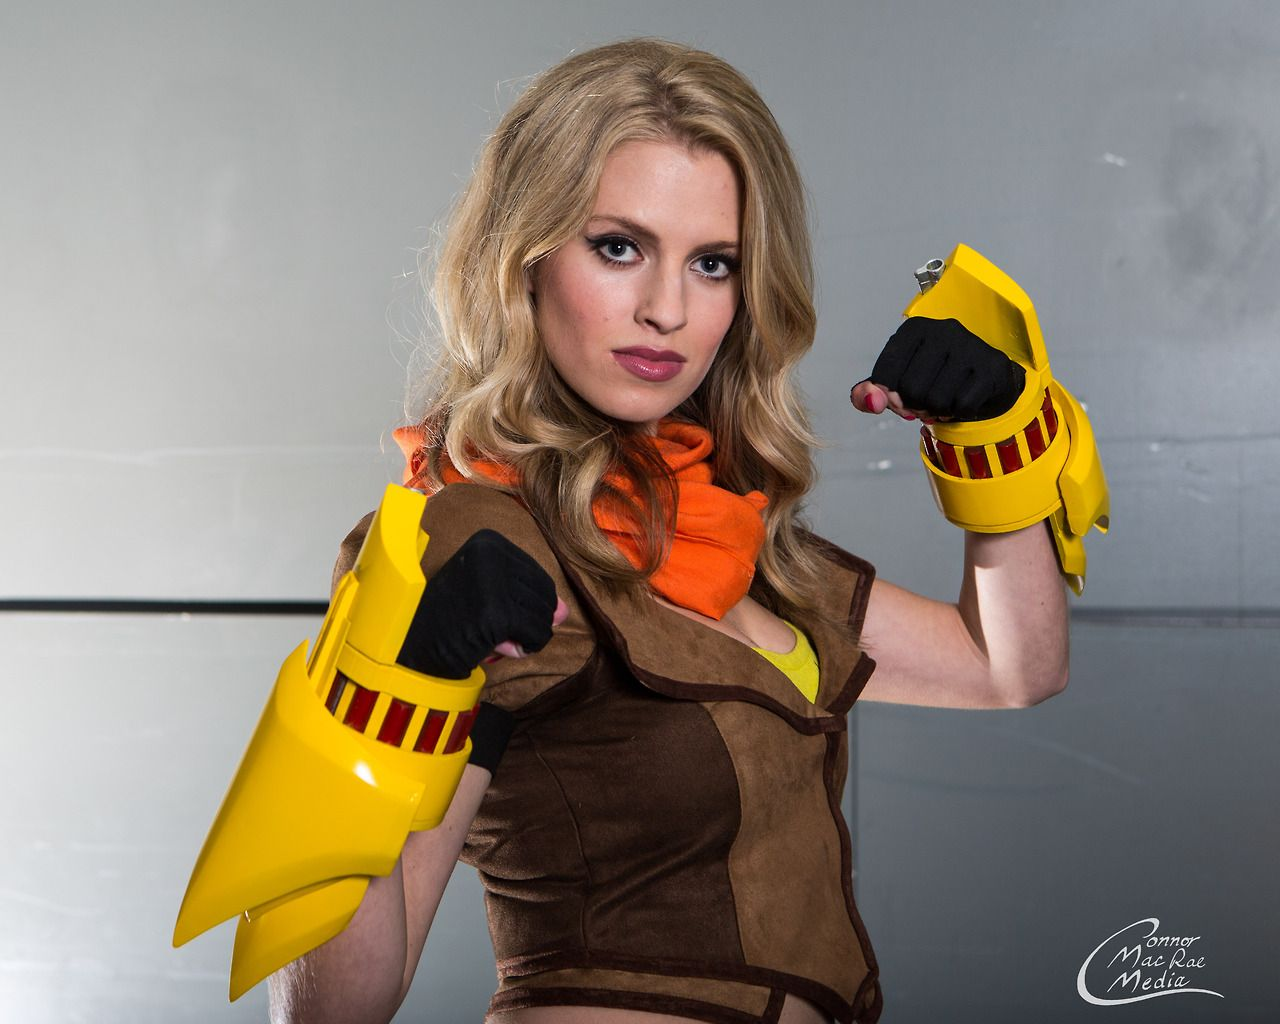 Interview with Rooster Teeth's own Barbara Dunkelman at RTX 2015